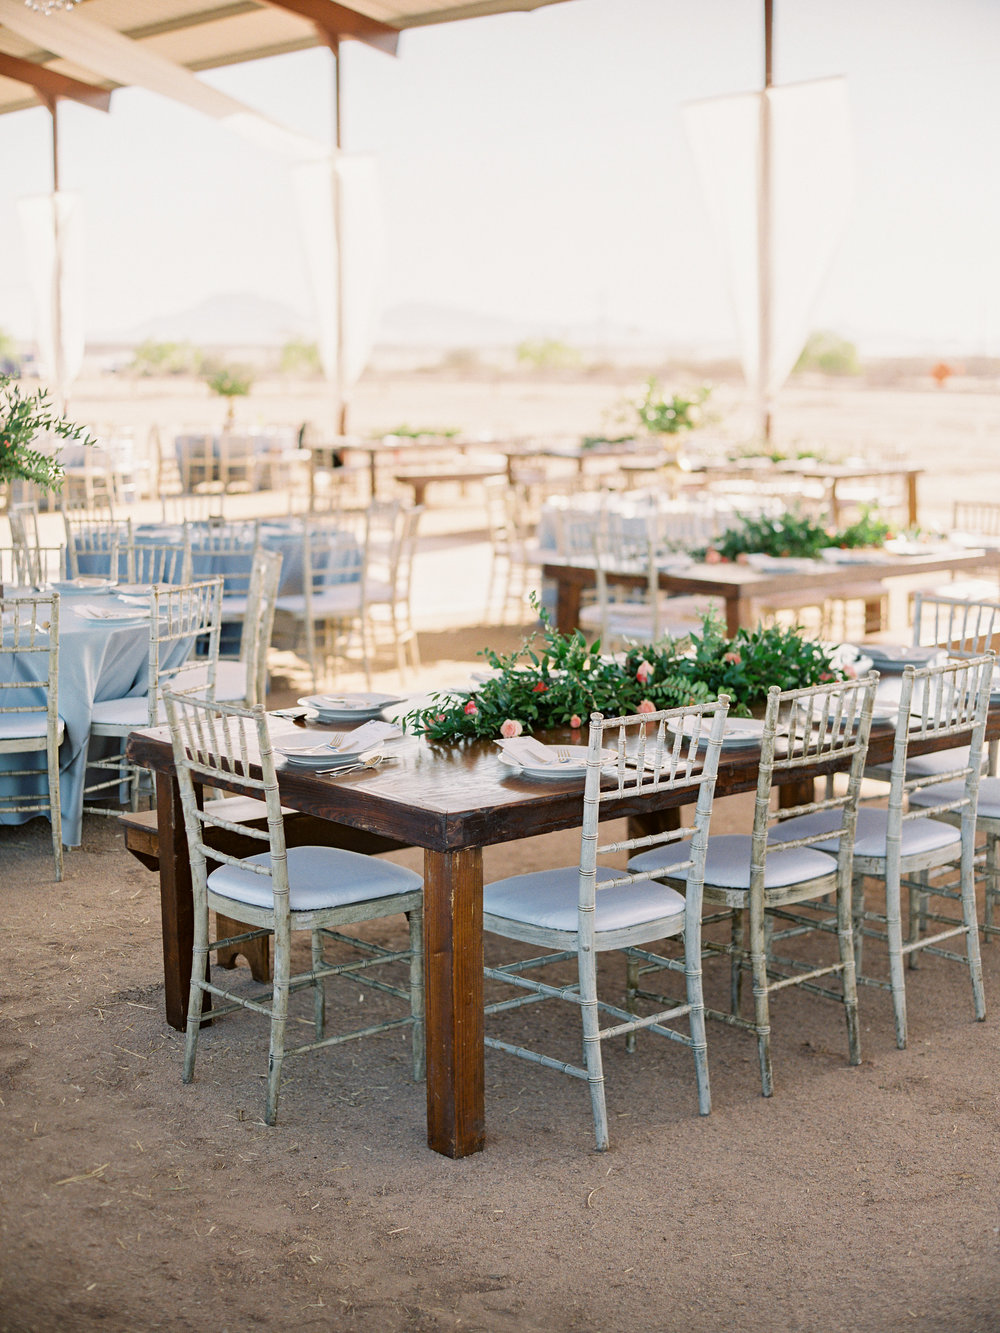 Dairy Farm Wedding - Barn Reception with Garland on Rectangular Tables